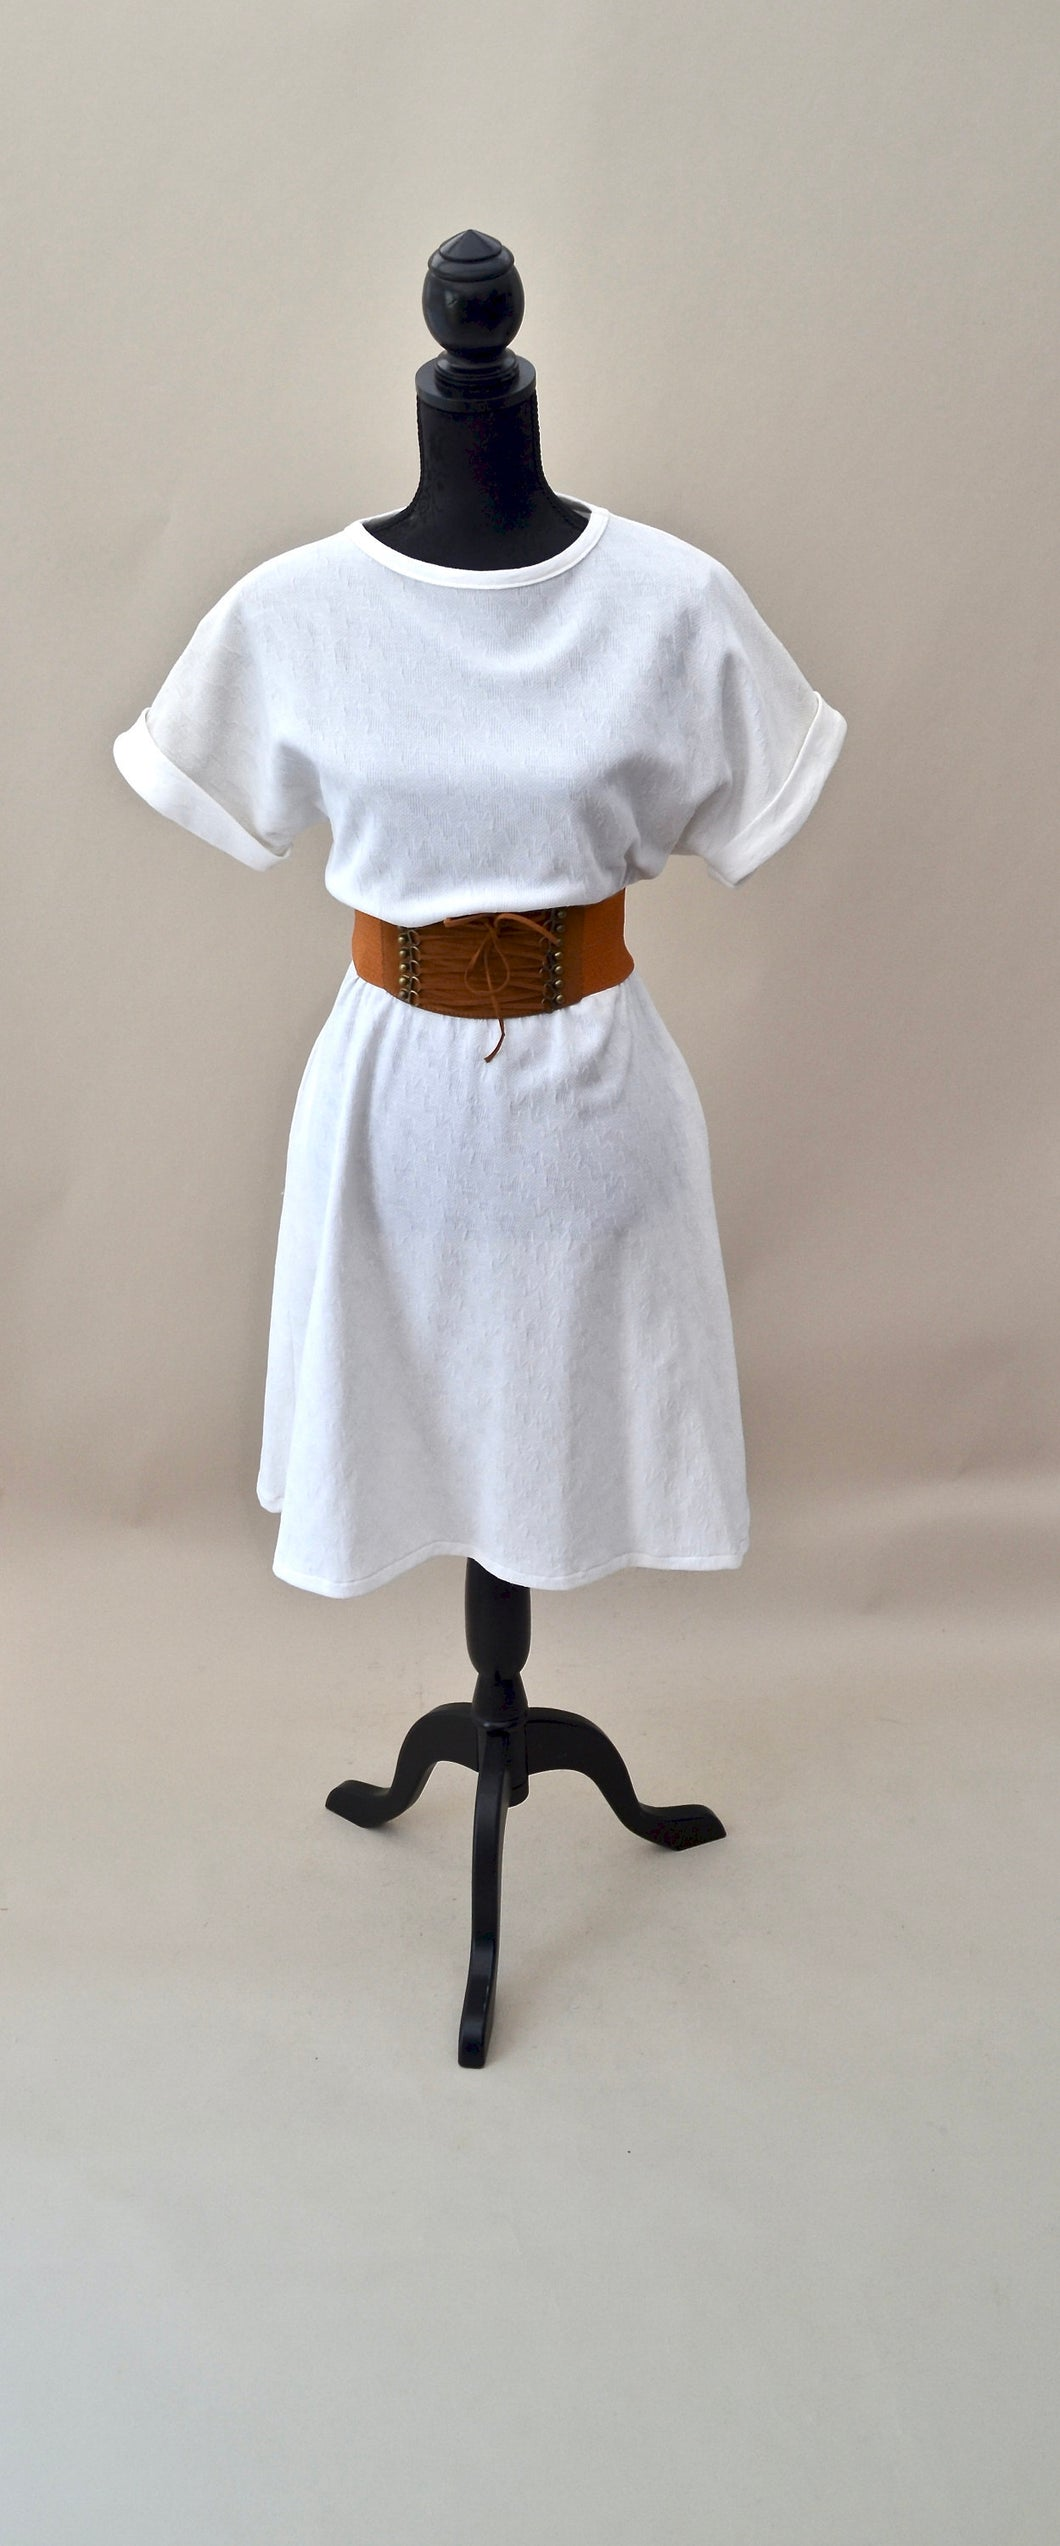 1980s White Aline short sleeve dress | Casual day dress with pockets |  Est UK size 12/14